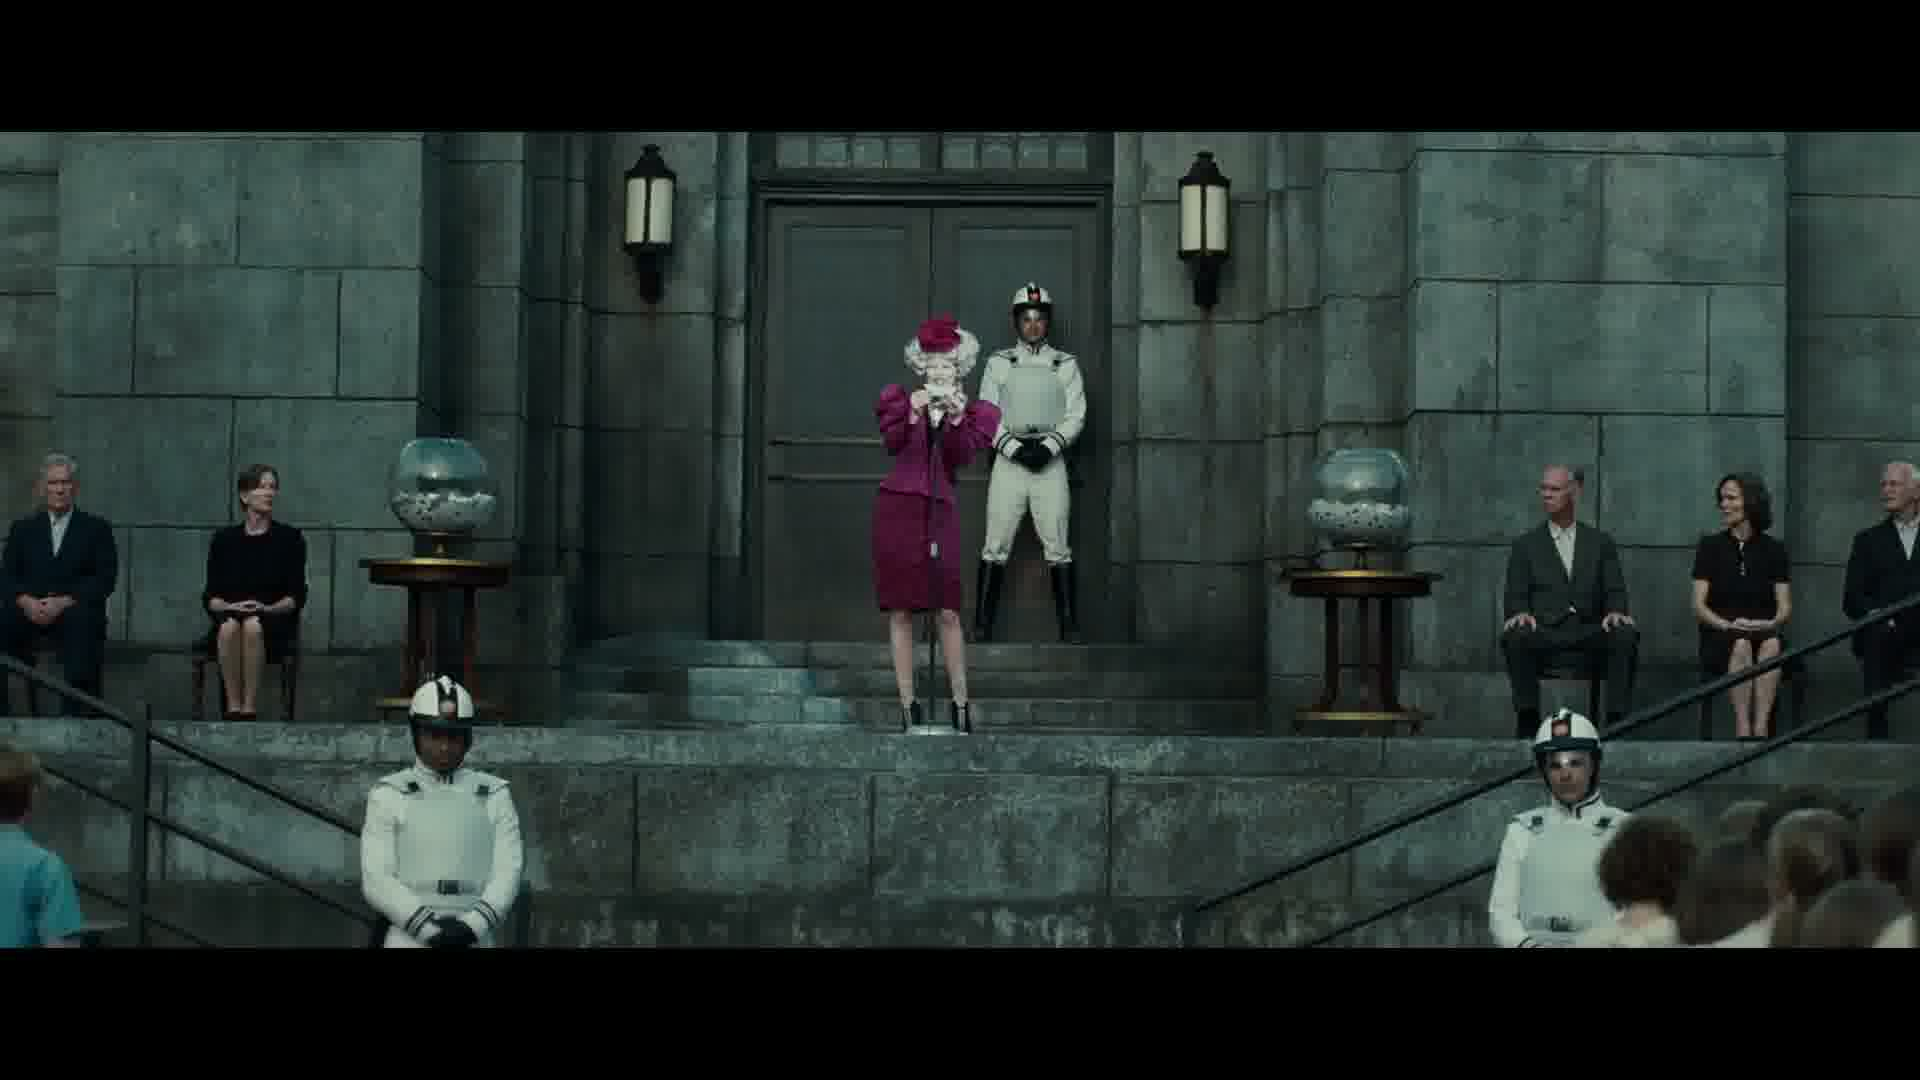 Effie Trinket Images The Hunger Games Trailer 2 Hd Wallpaper And Background Photos